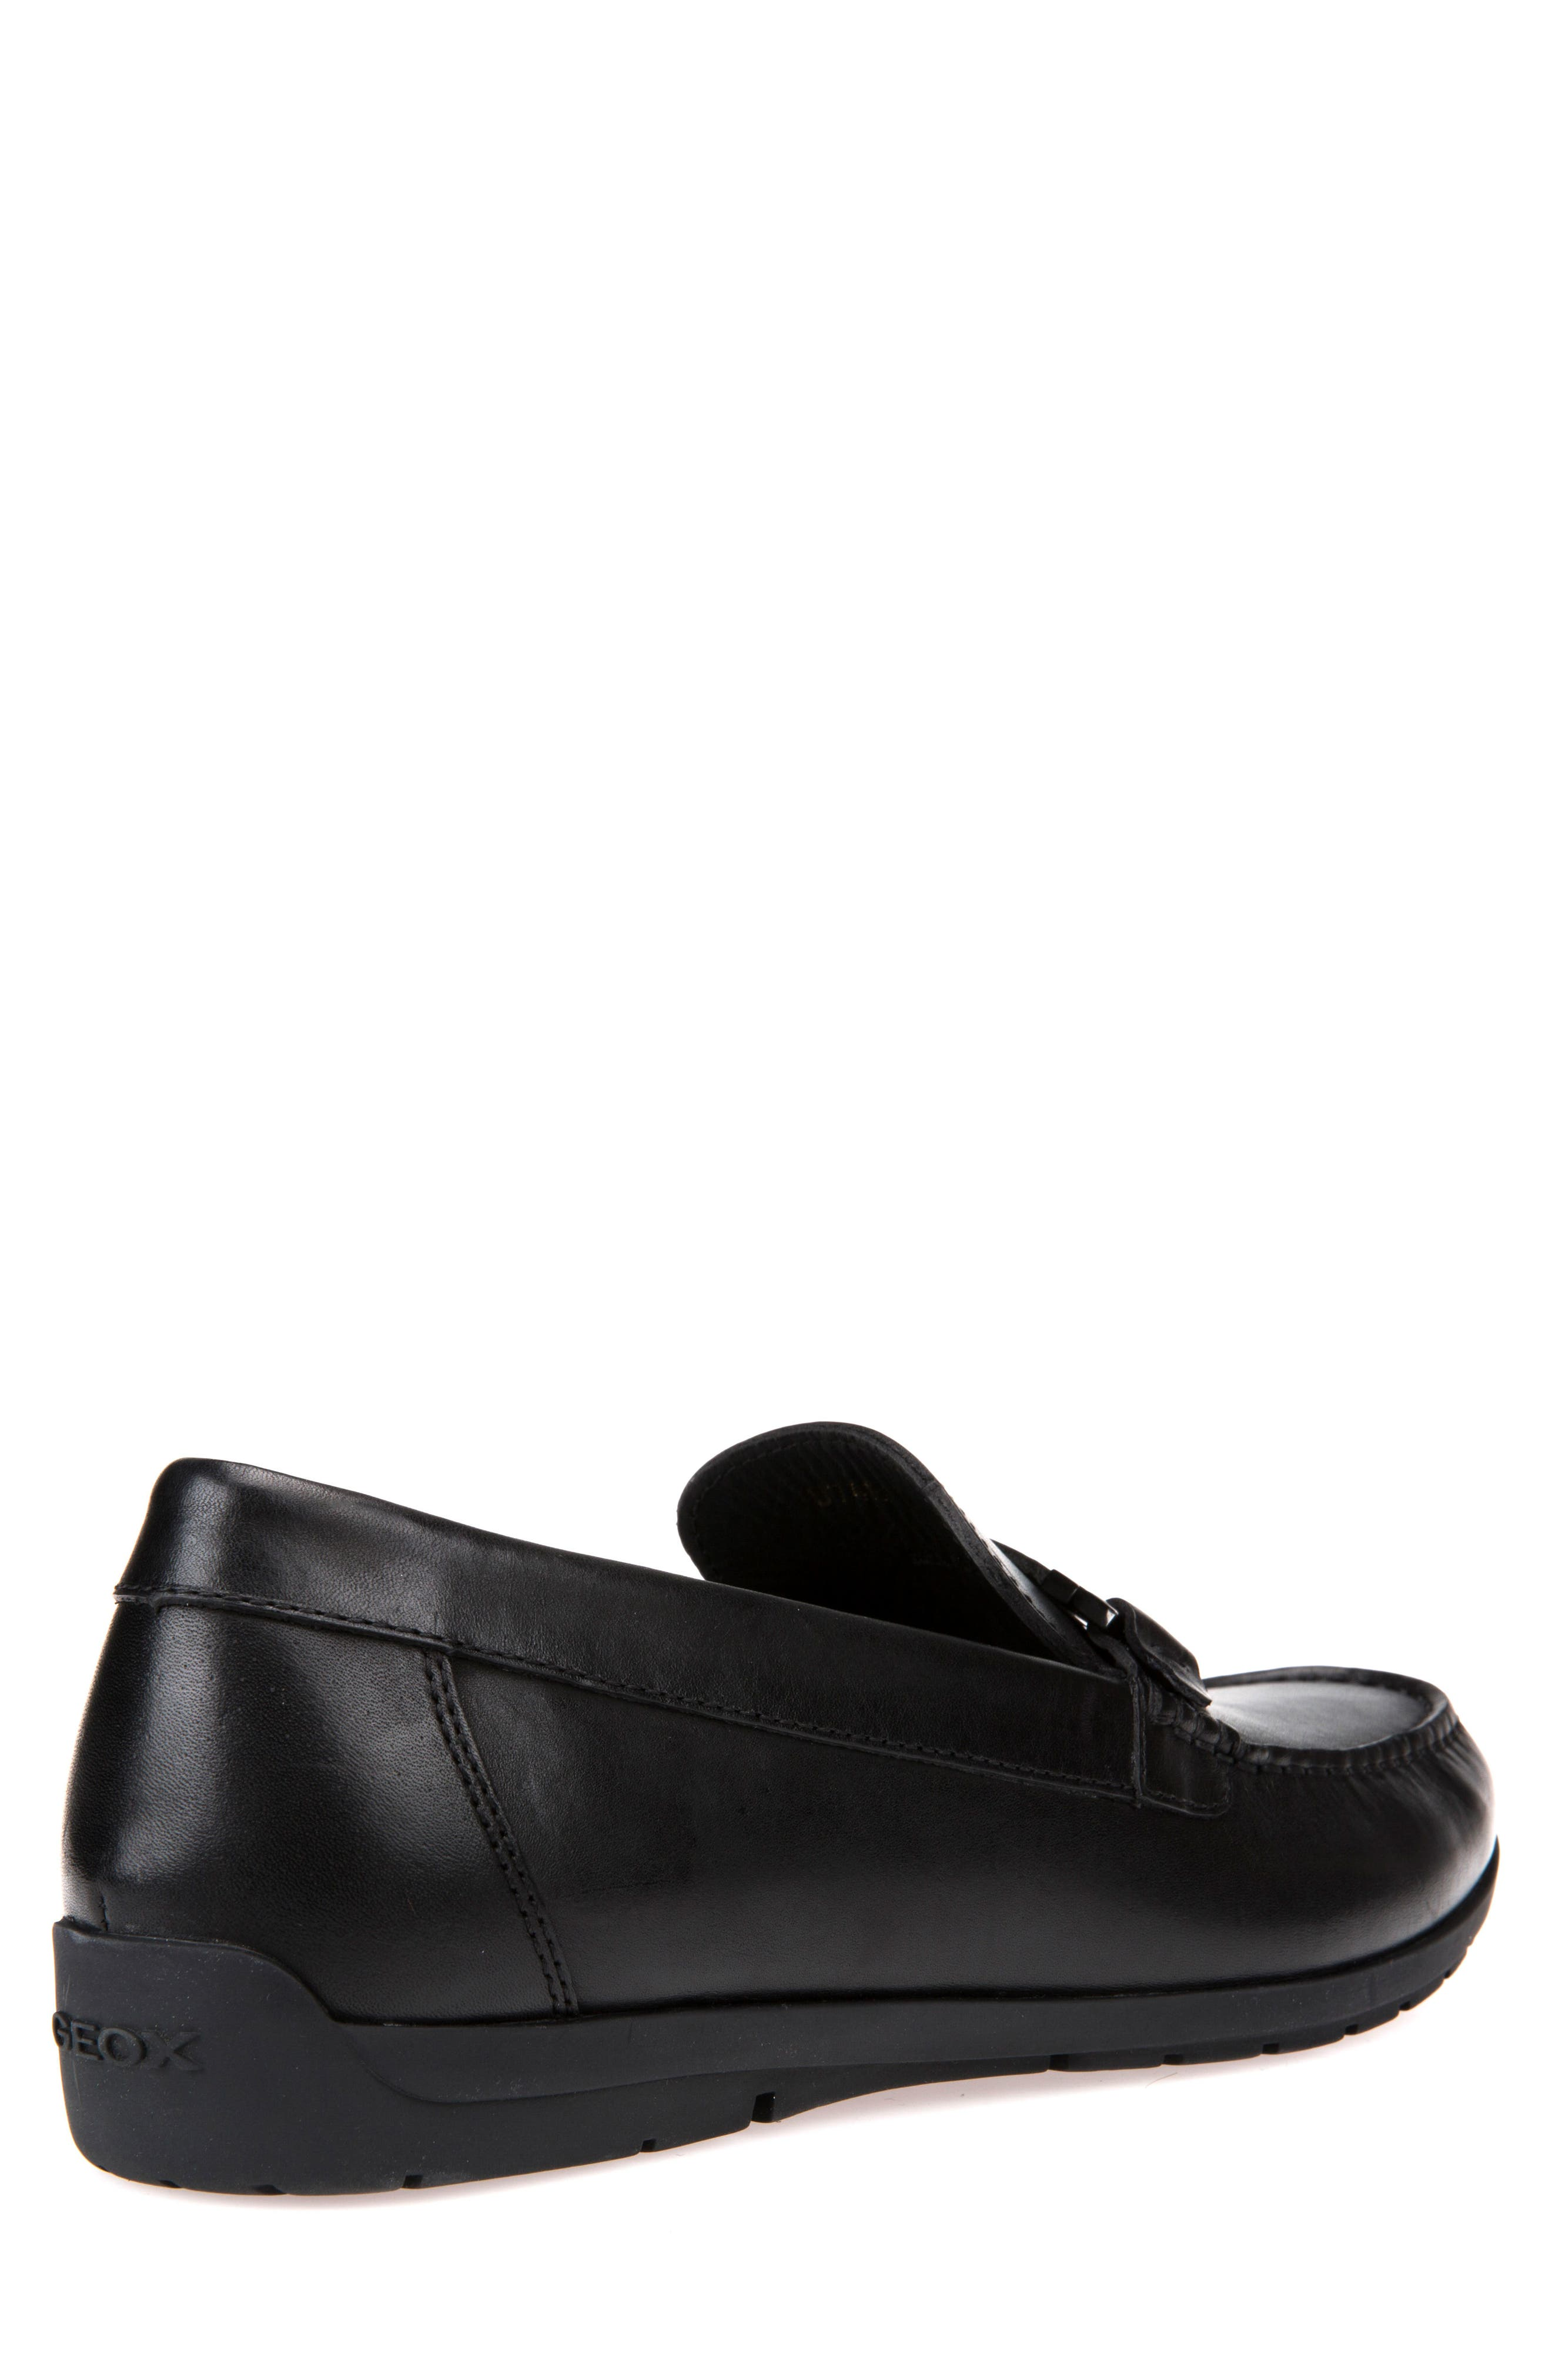 Siron W 1 Moc Toe Loafer,                             Alternate thumbnail 2, color,                             BLACK LEATHER